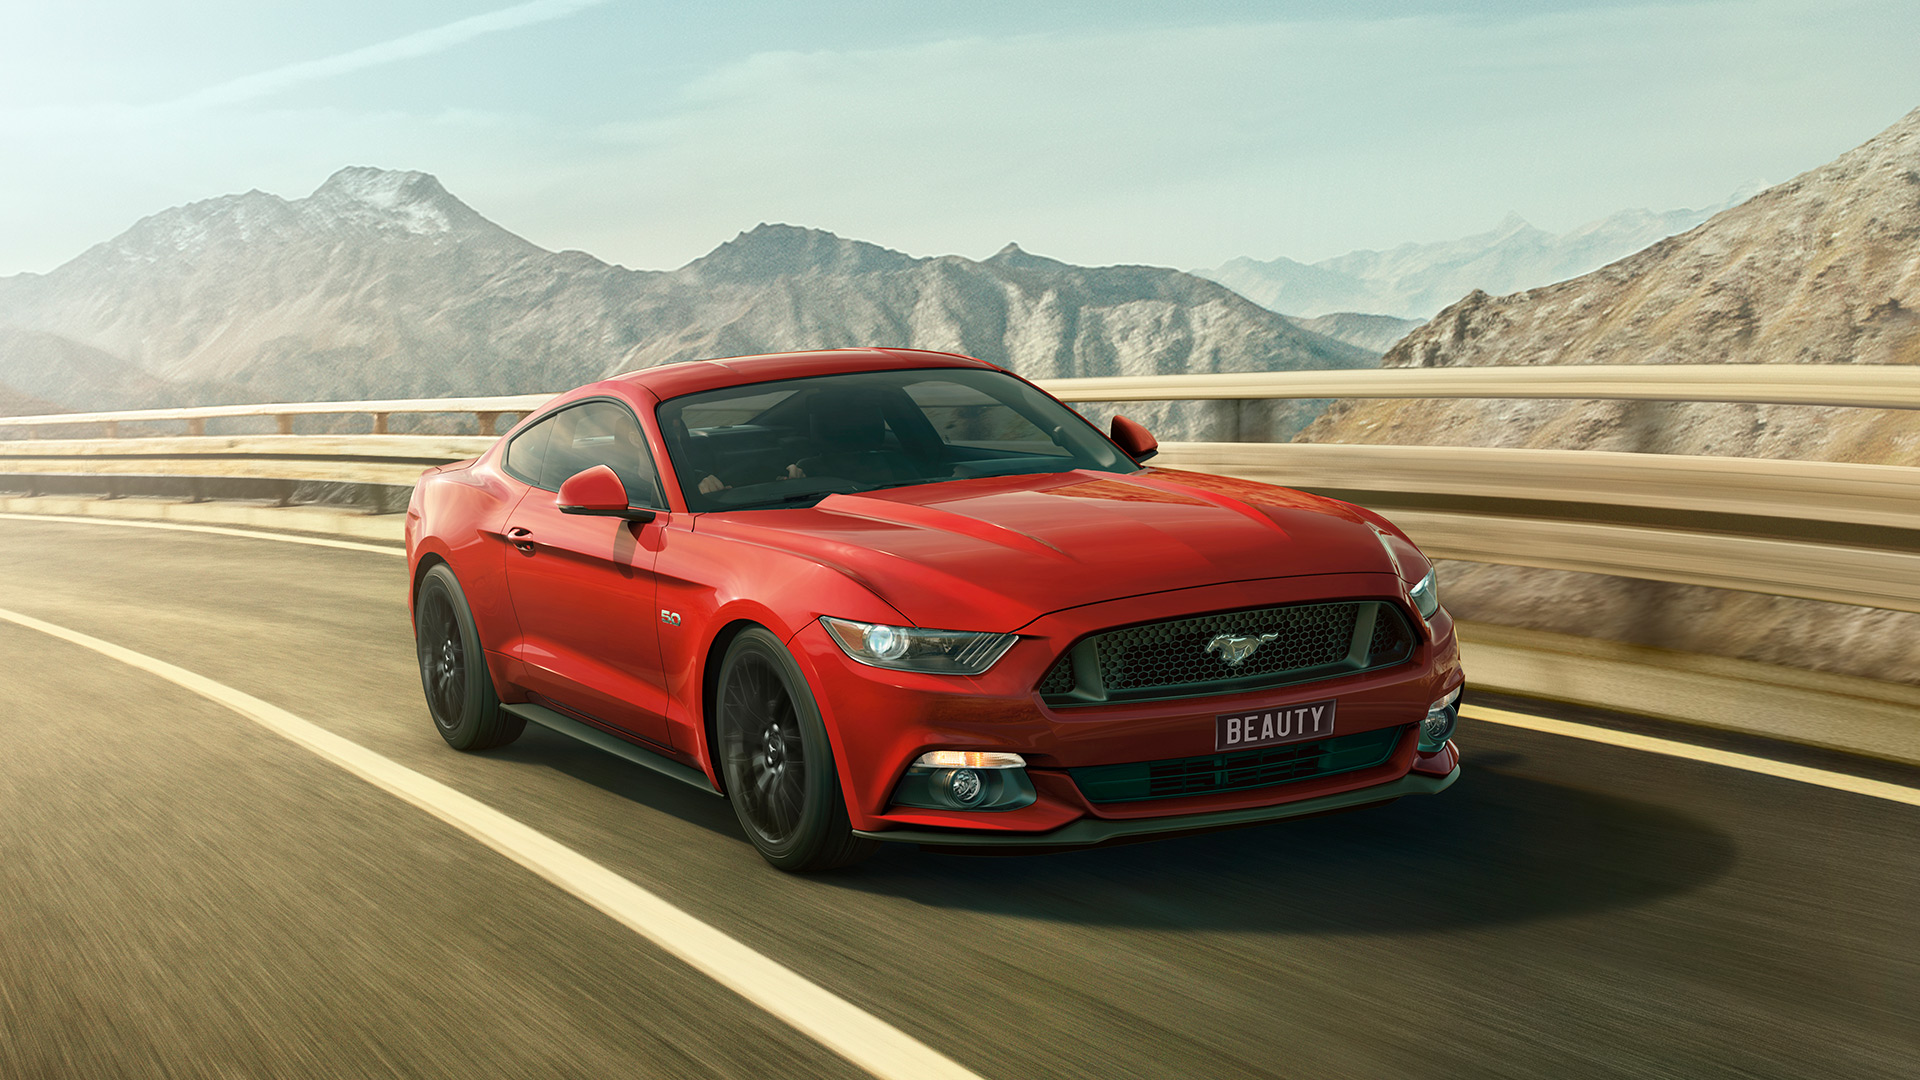 The On-Road Beauty - 2020 Ford Mustang